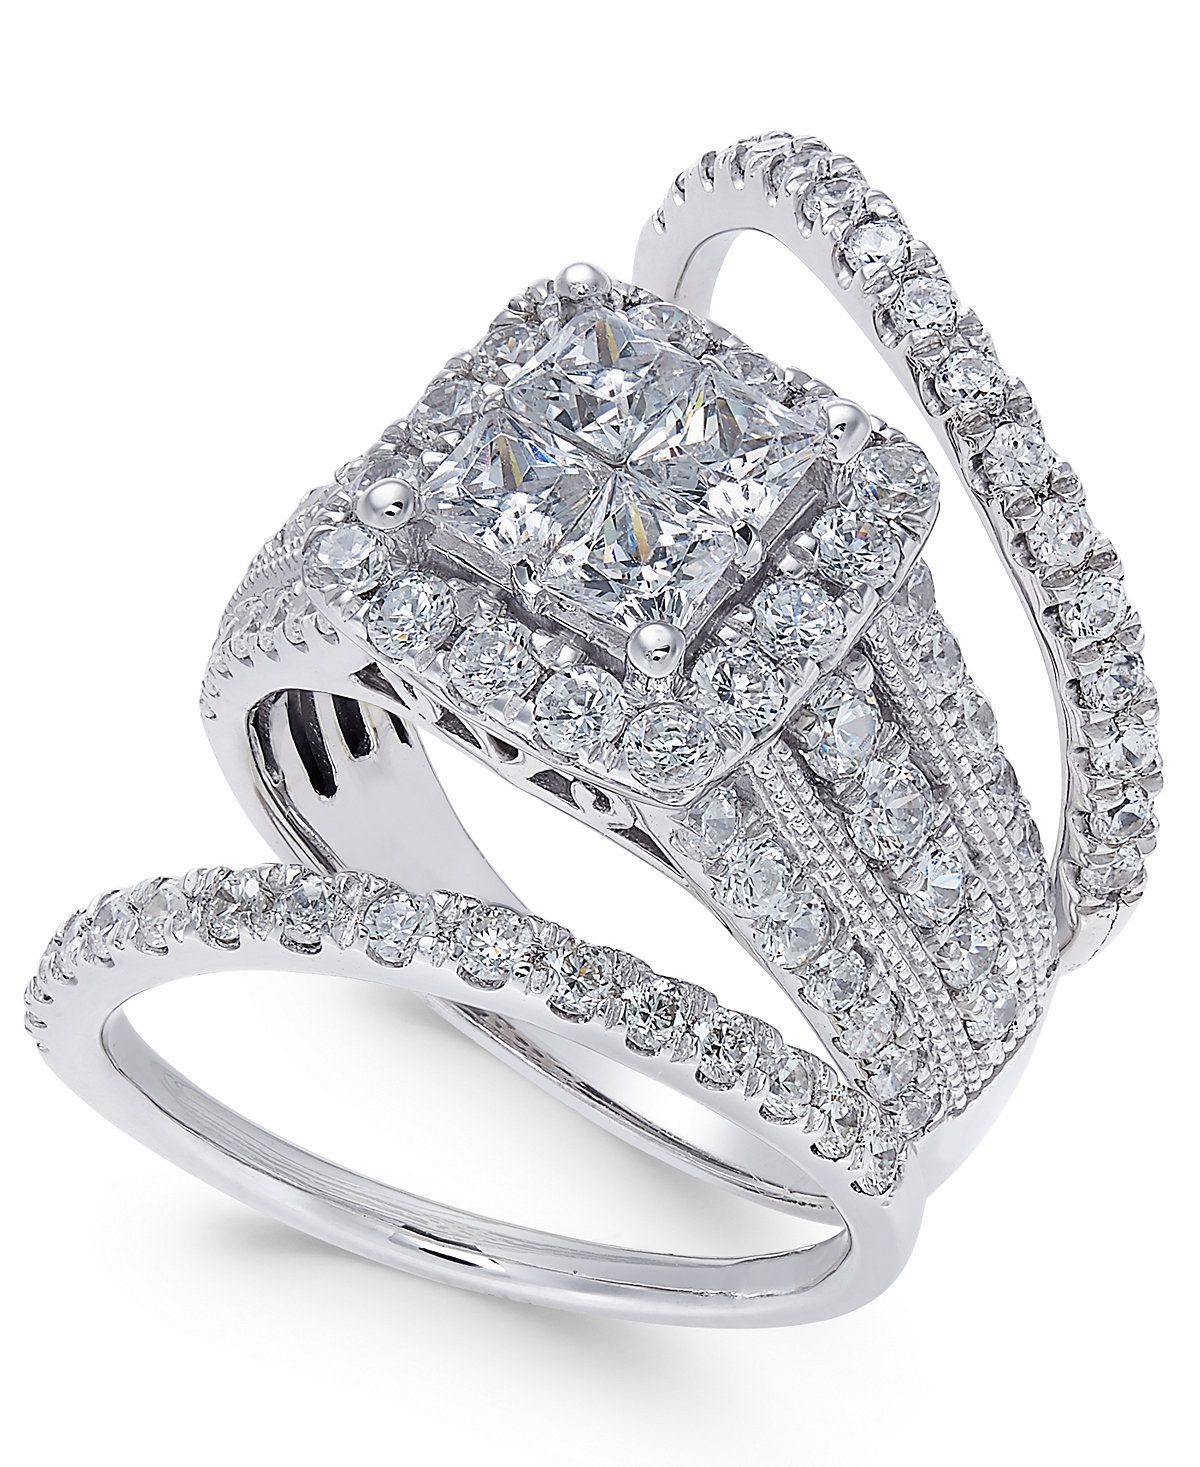 Diamond 3 Pc Bridal Set 3 Ct T W In 14k White Gold Rings